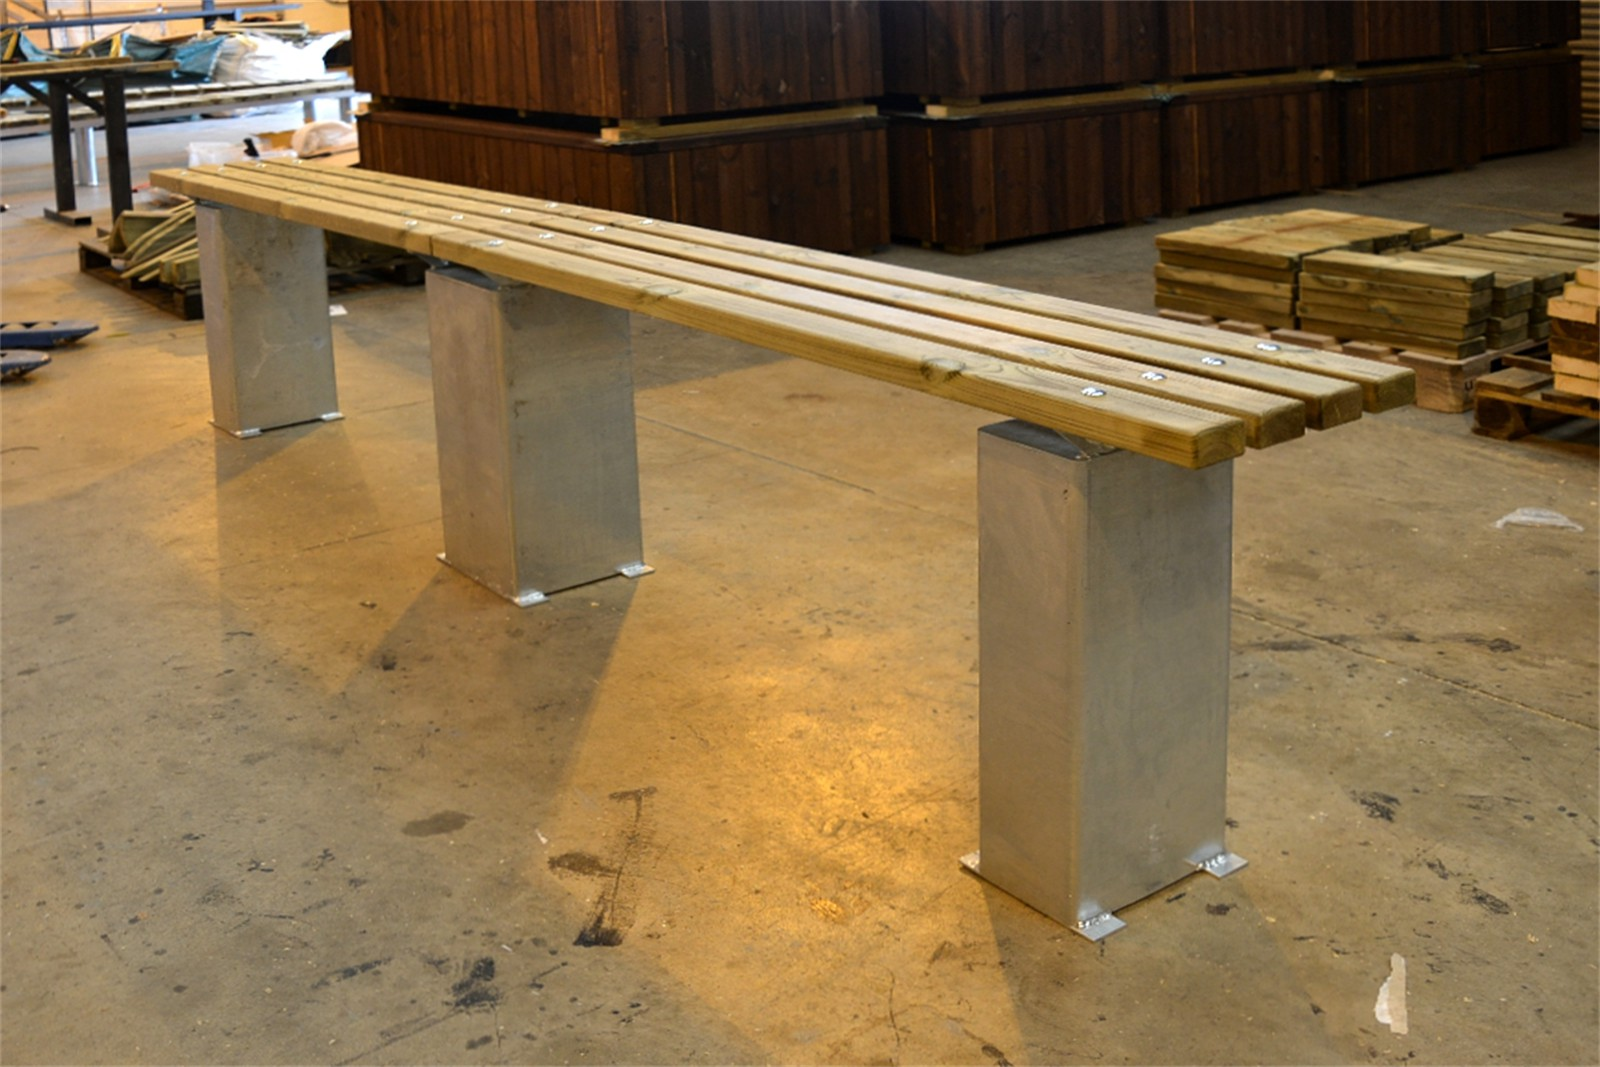 76sbe18 - Bexley long straight bench in manufacture